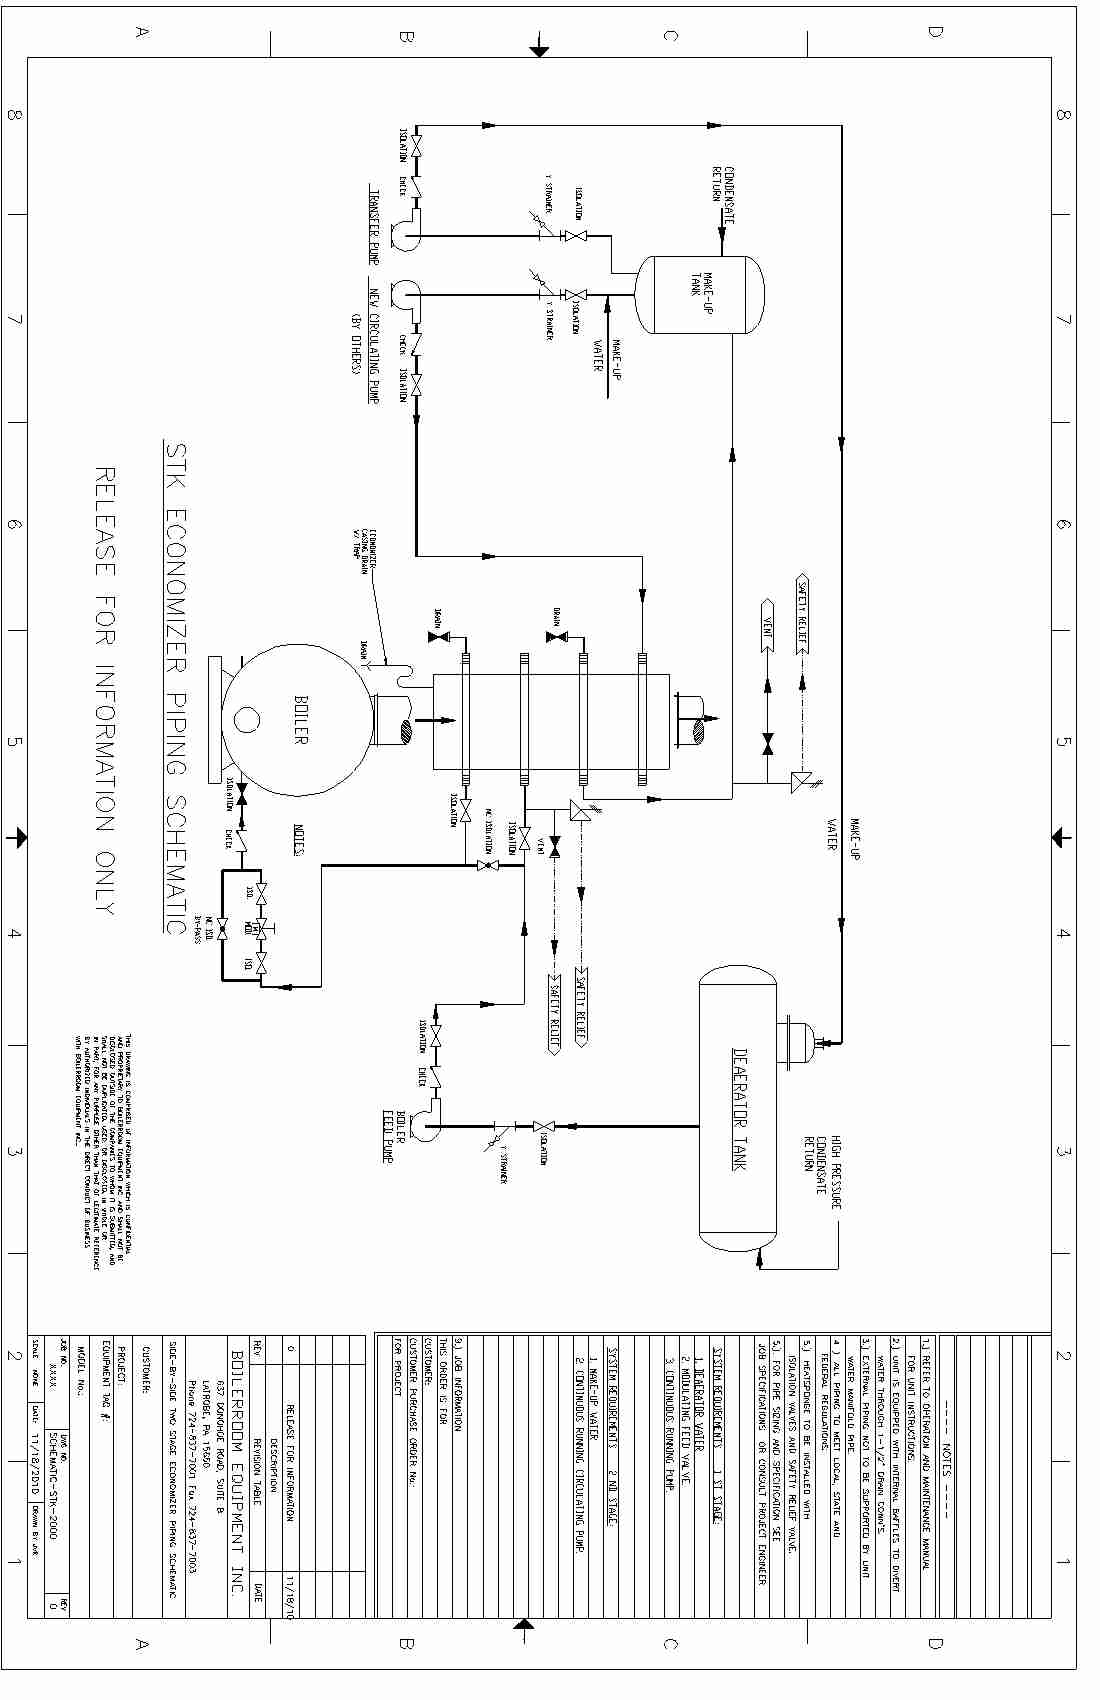 Warn Solenoid Wiring Diagram Free Download Schematic Diagrams Winch Xd9000i Picture Motor 2500